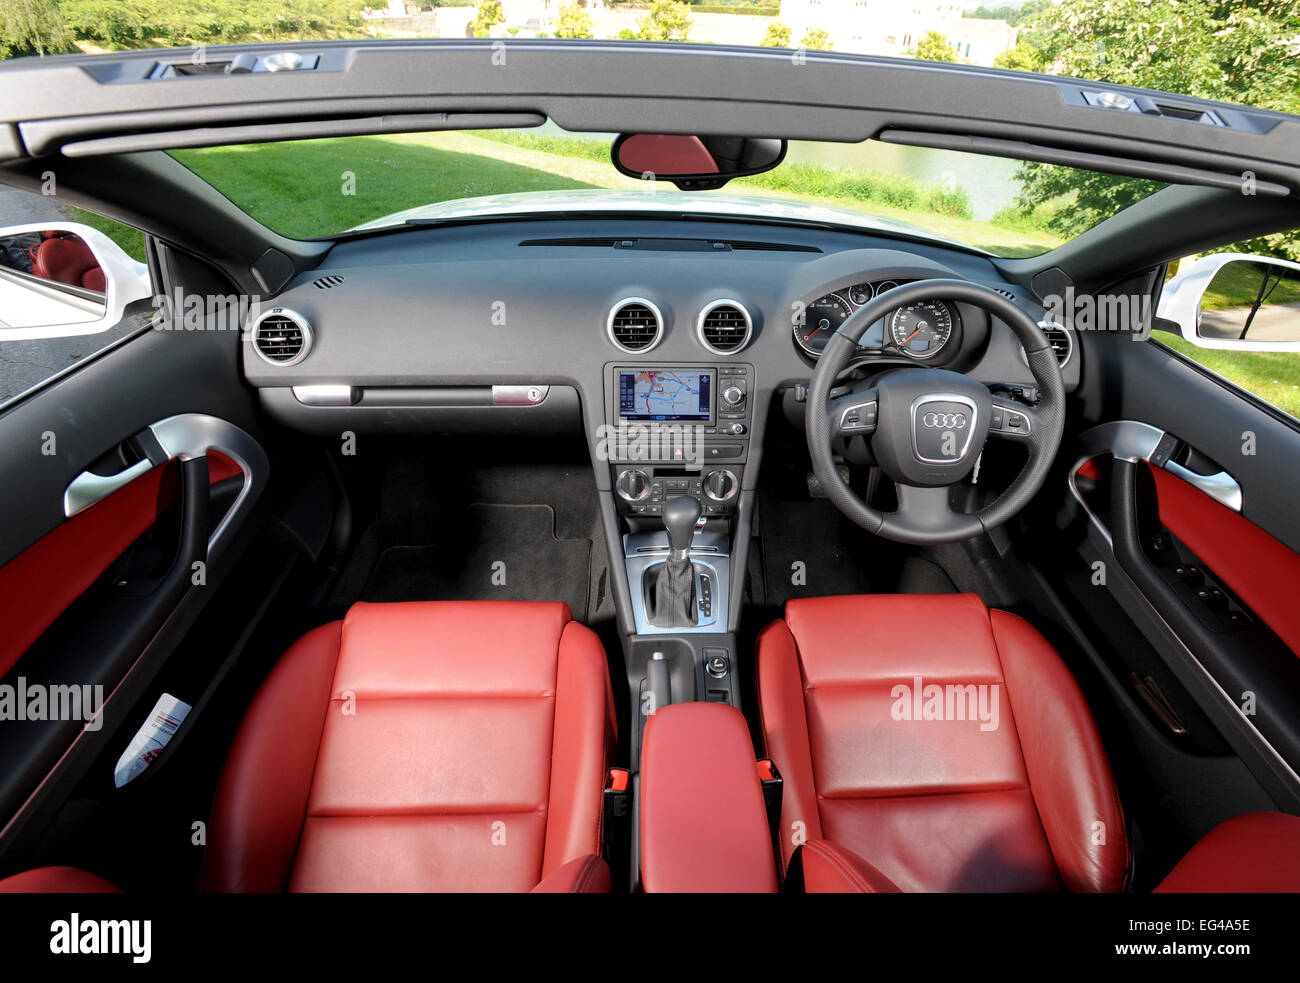 2008 Audi A3 Convertible Car Interior Stock Photo Alamy